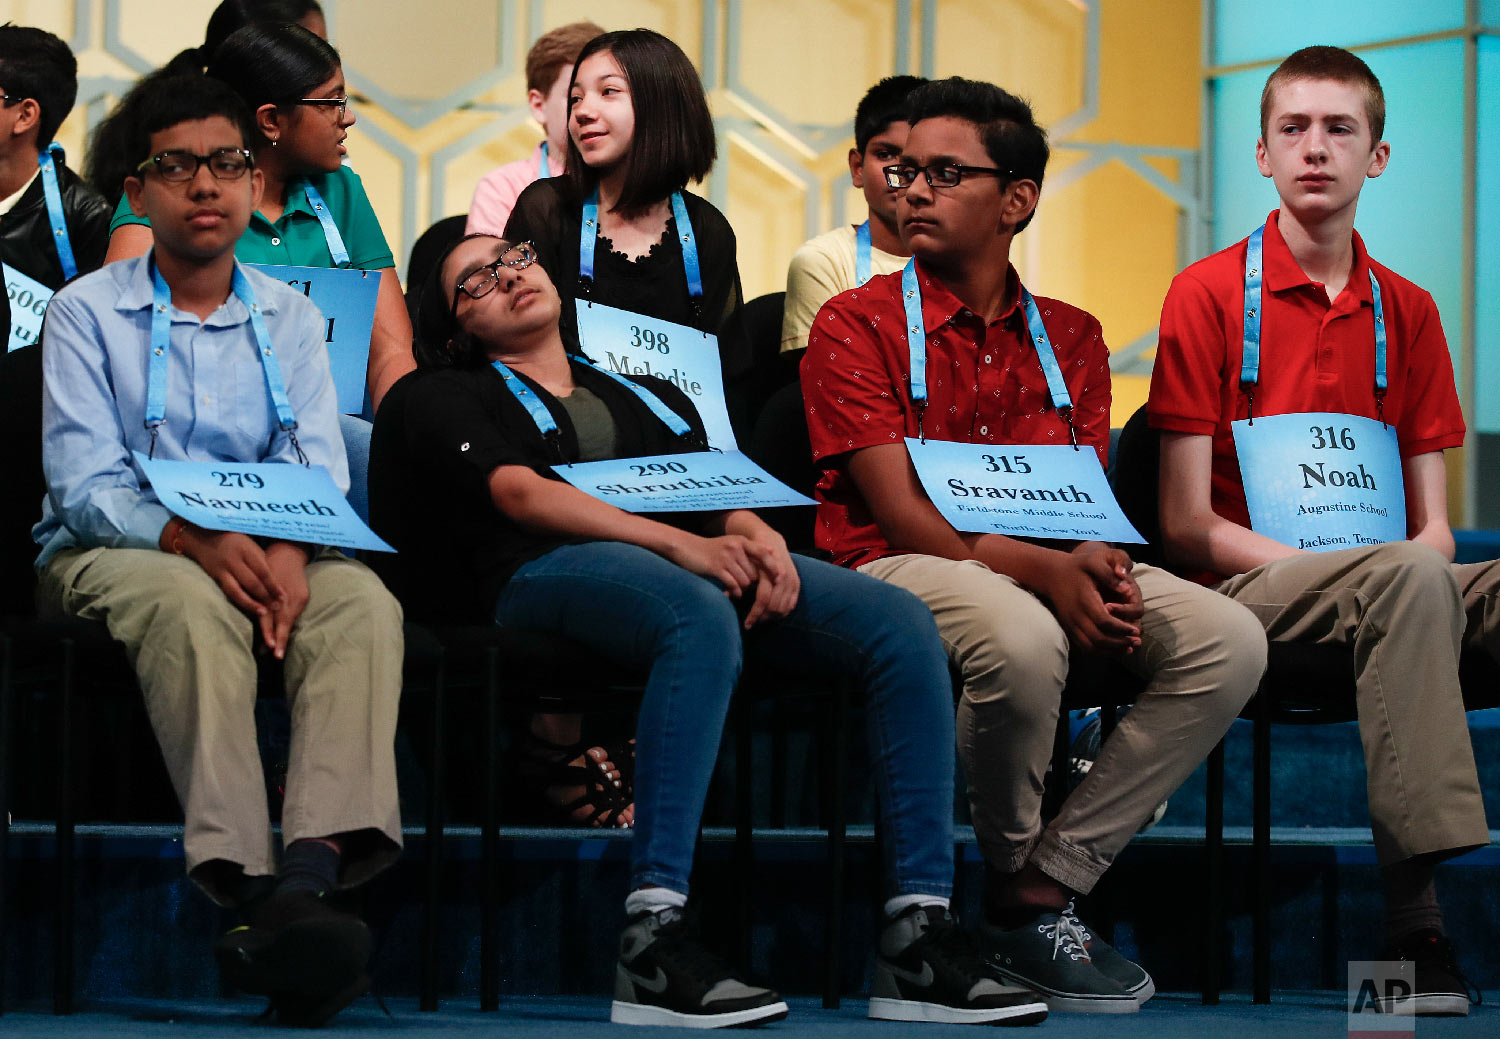 Shruthika Padhy, 12, from Cherry Hill, N.J. second from left, slumps in her chair and closes her eyes as she sits with from left, Navneeth Murali, 12, from Edison, N.J. Sravanth Malla, 14, from Haverstraw, N.Y., and Noah Brandt, 15, from Jackson, Tenn., during the final round of the Scripps National Spelling Bee in Oxon Hill, Md., Thursday, May 31, 2018. (AP Photo/Carolyn Kaster)